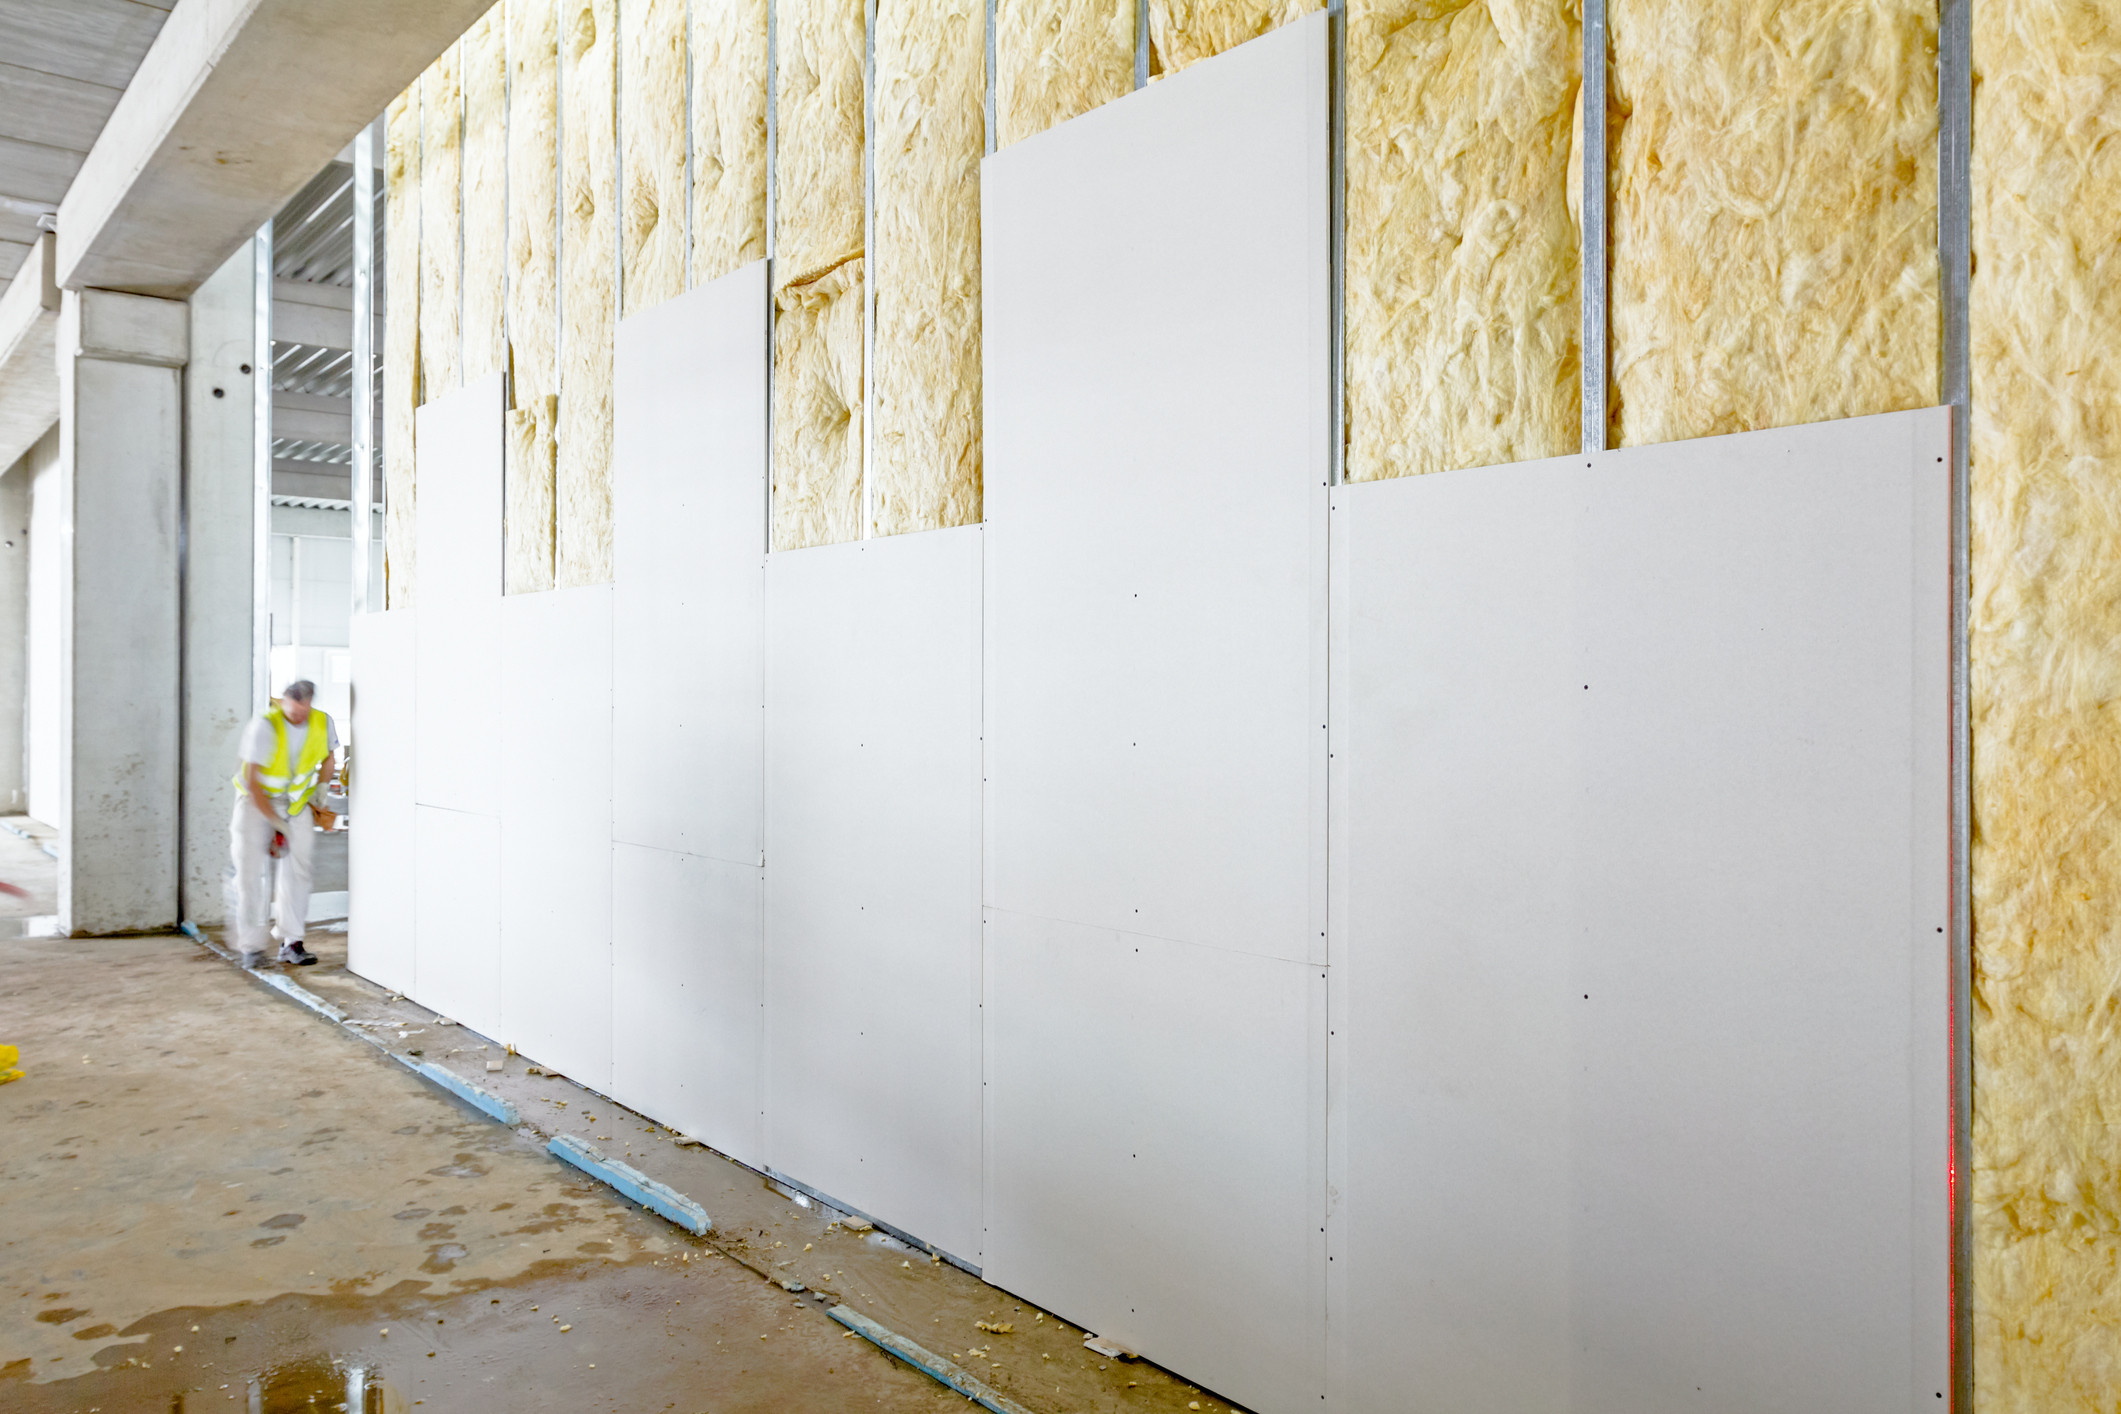 front view of gypsum wall plasterboard is under construction